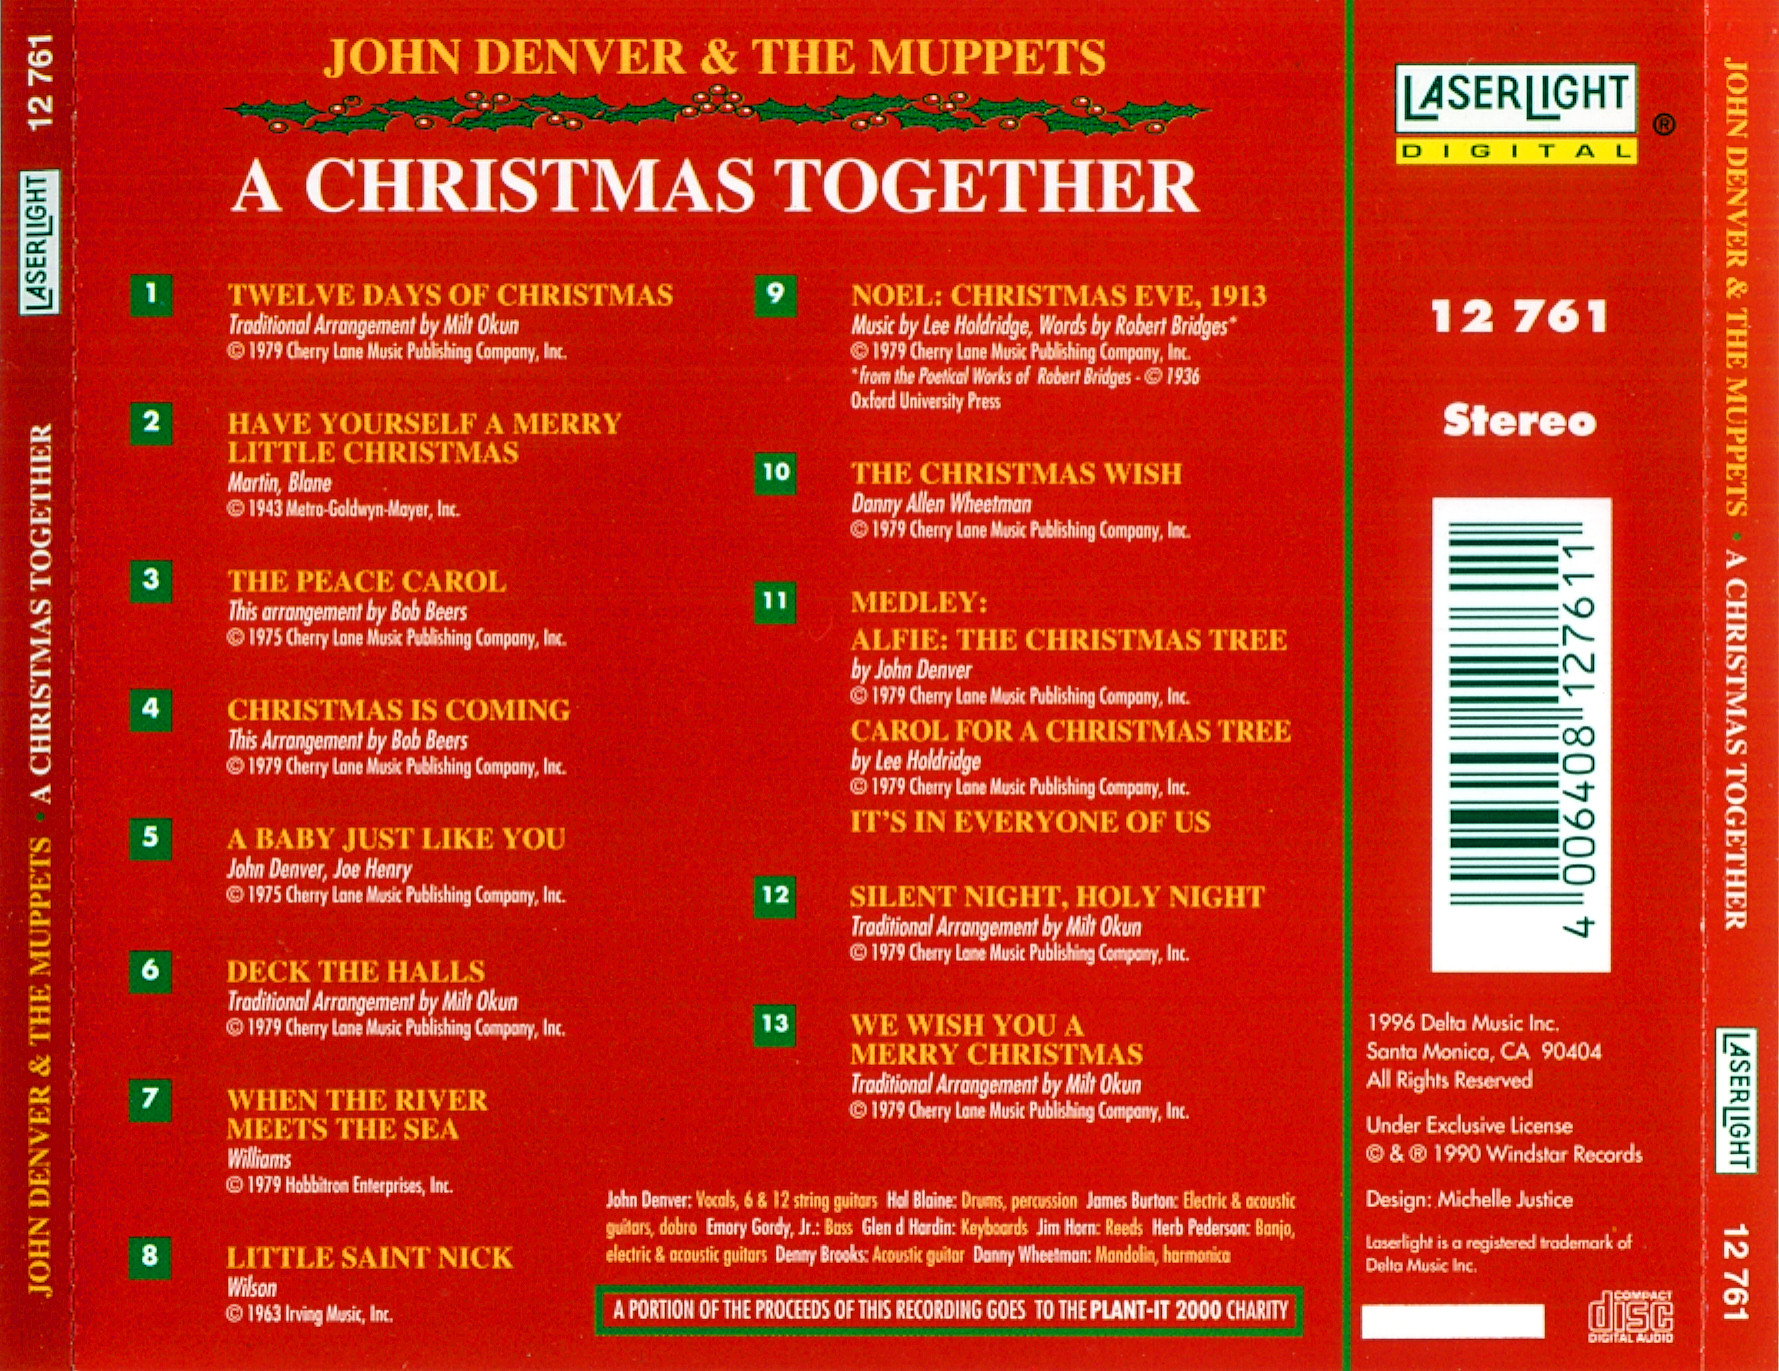 John denver and the muppets a christmas together dvd download ...